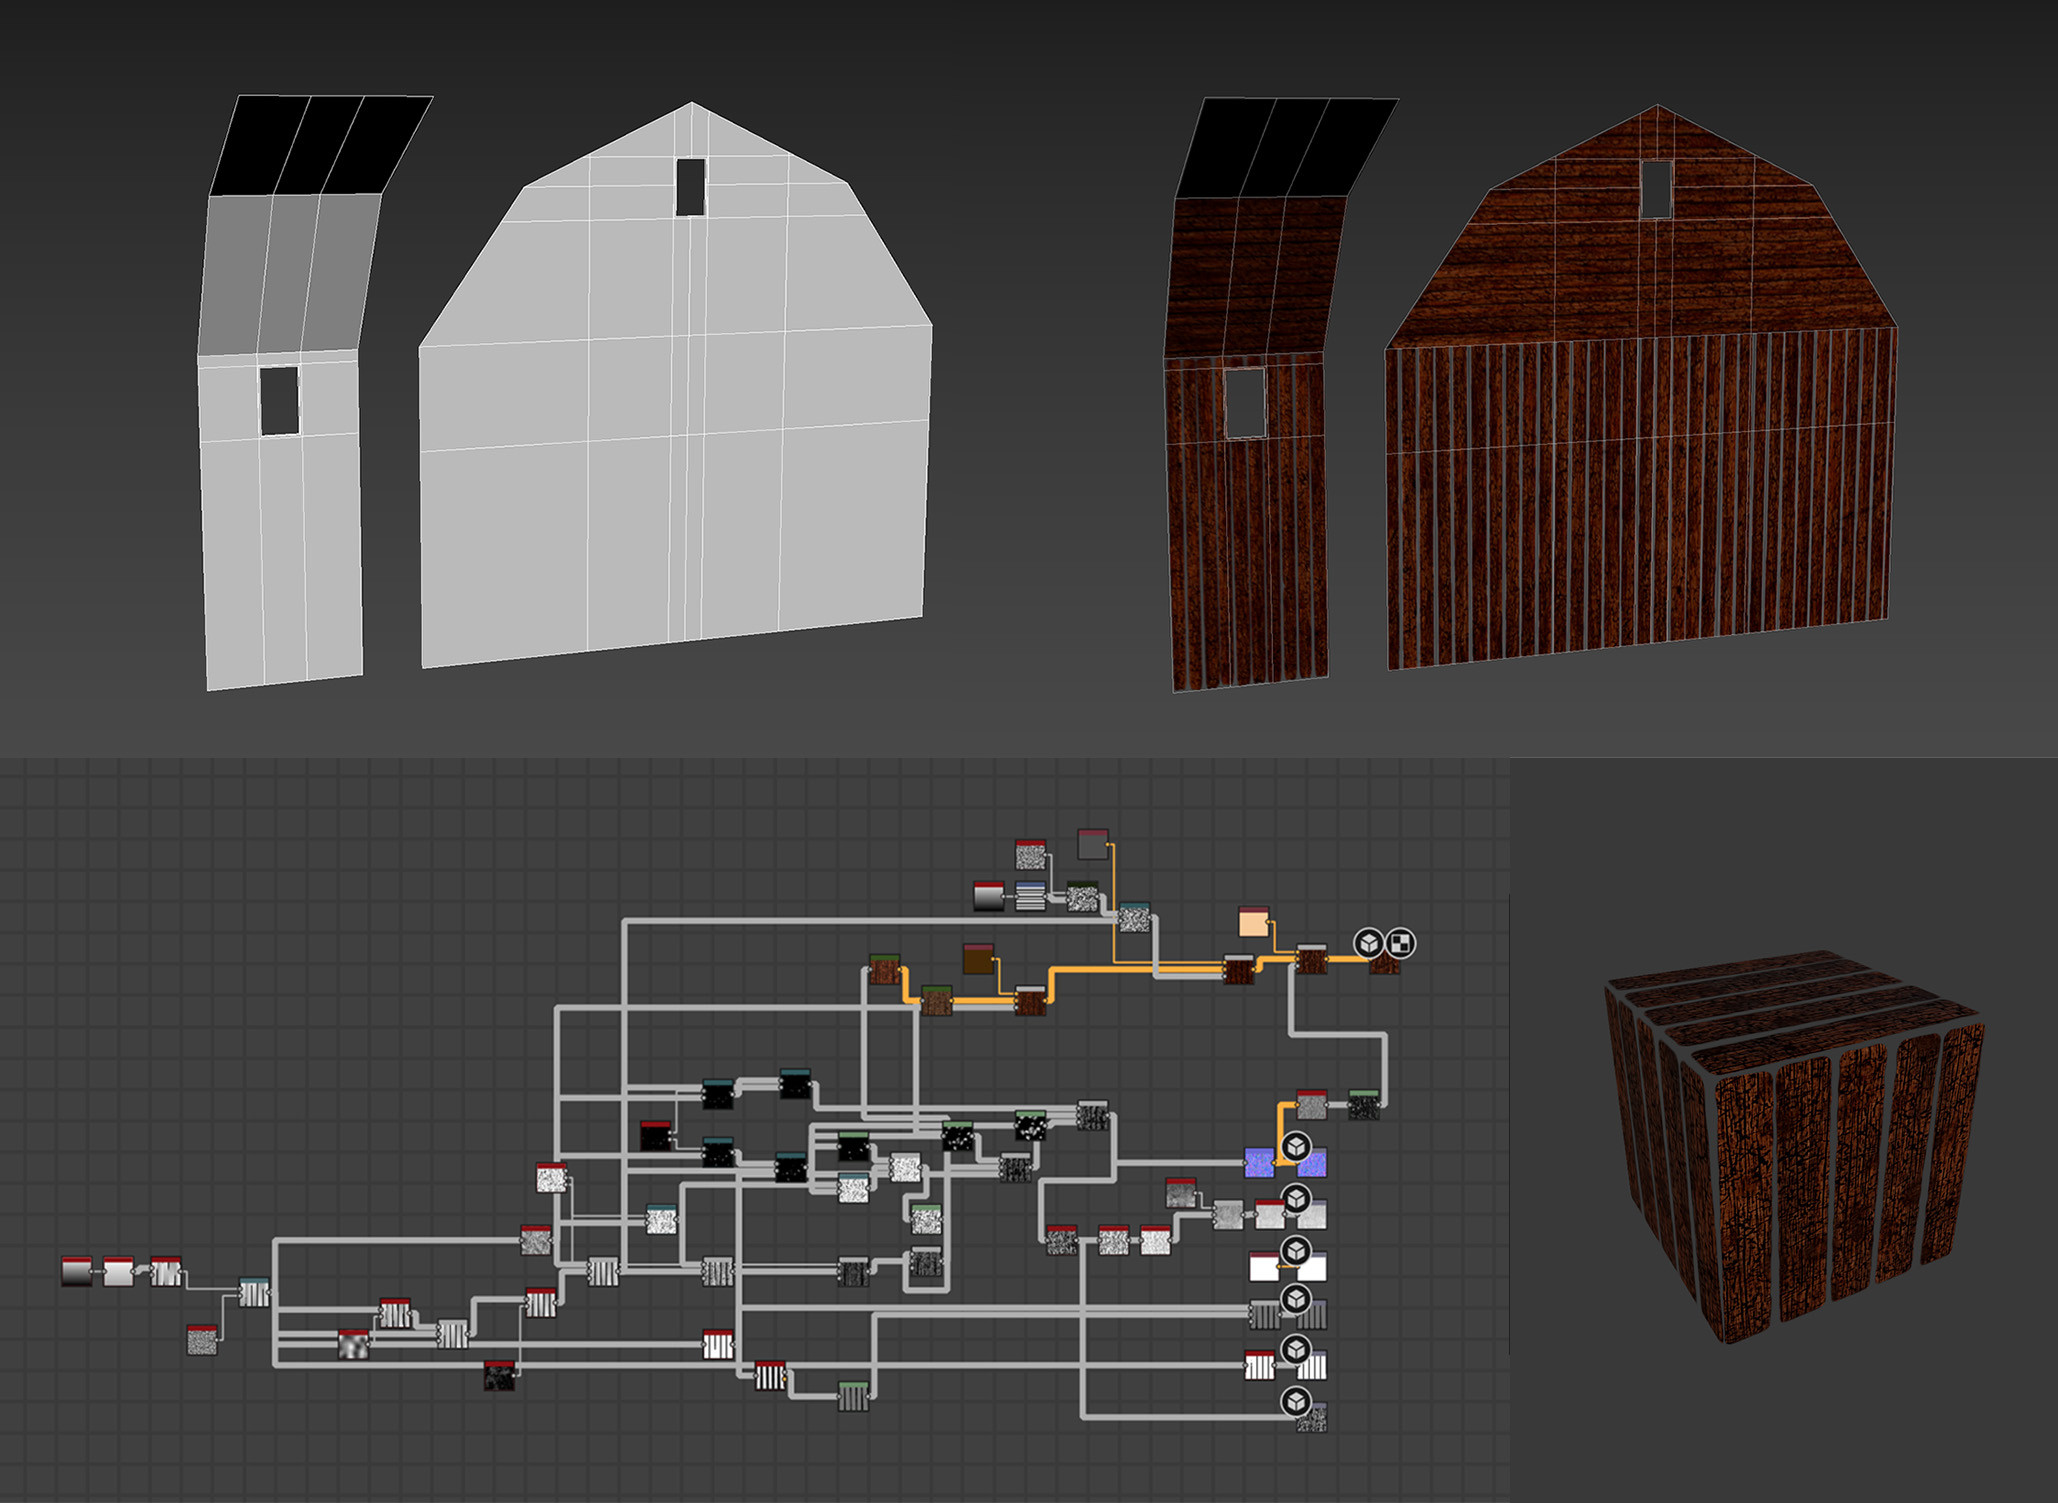 Barn textures made with Substance Designer